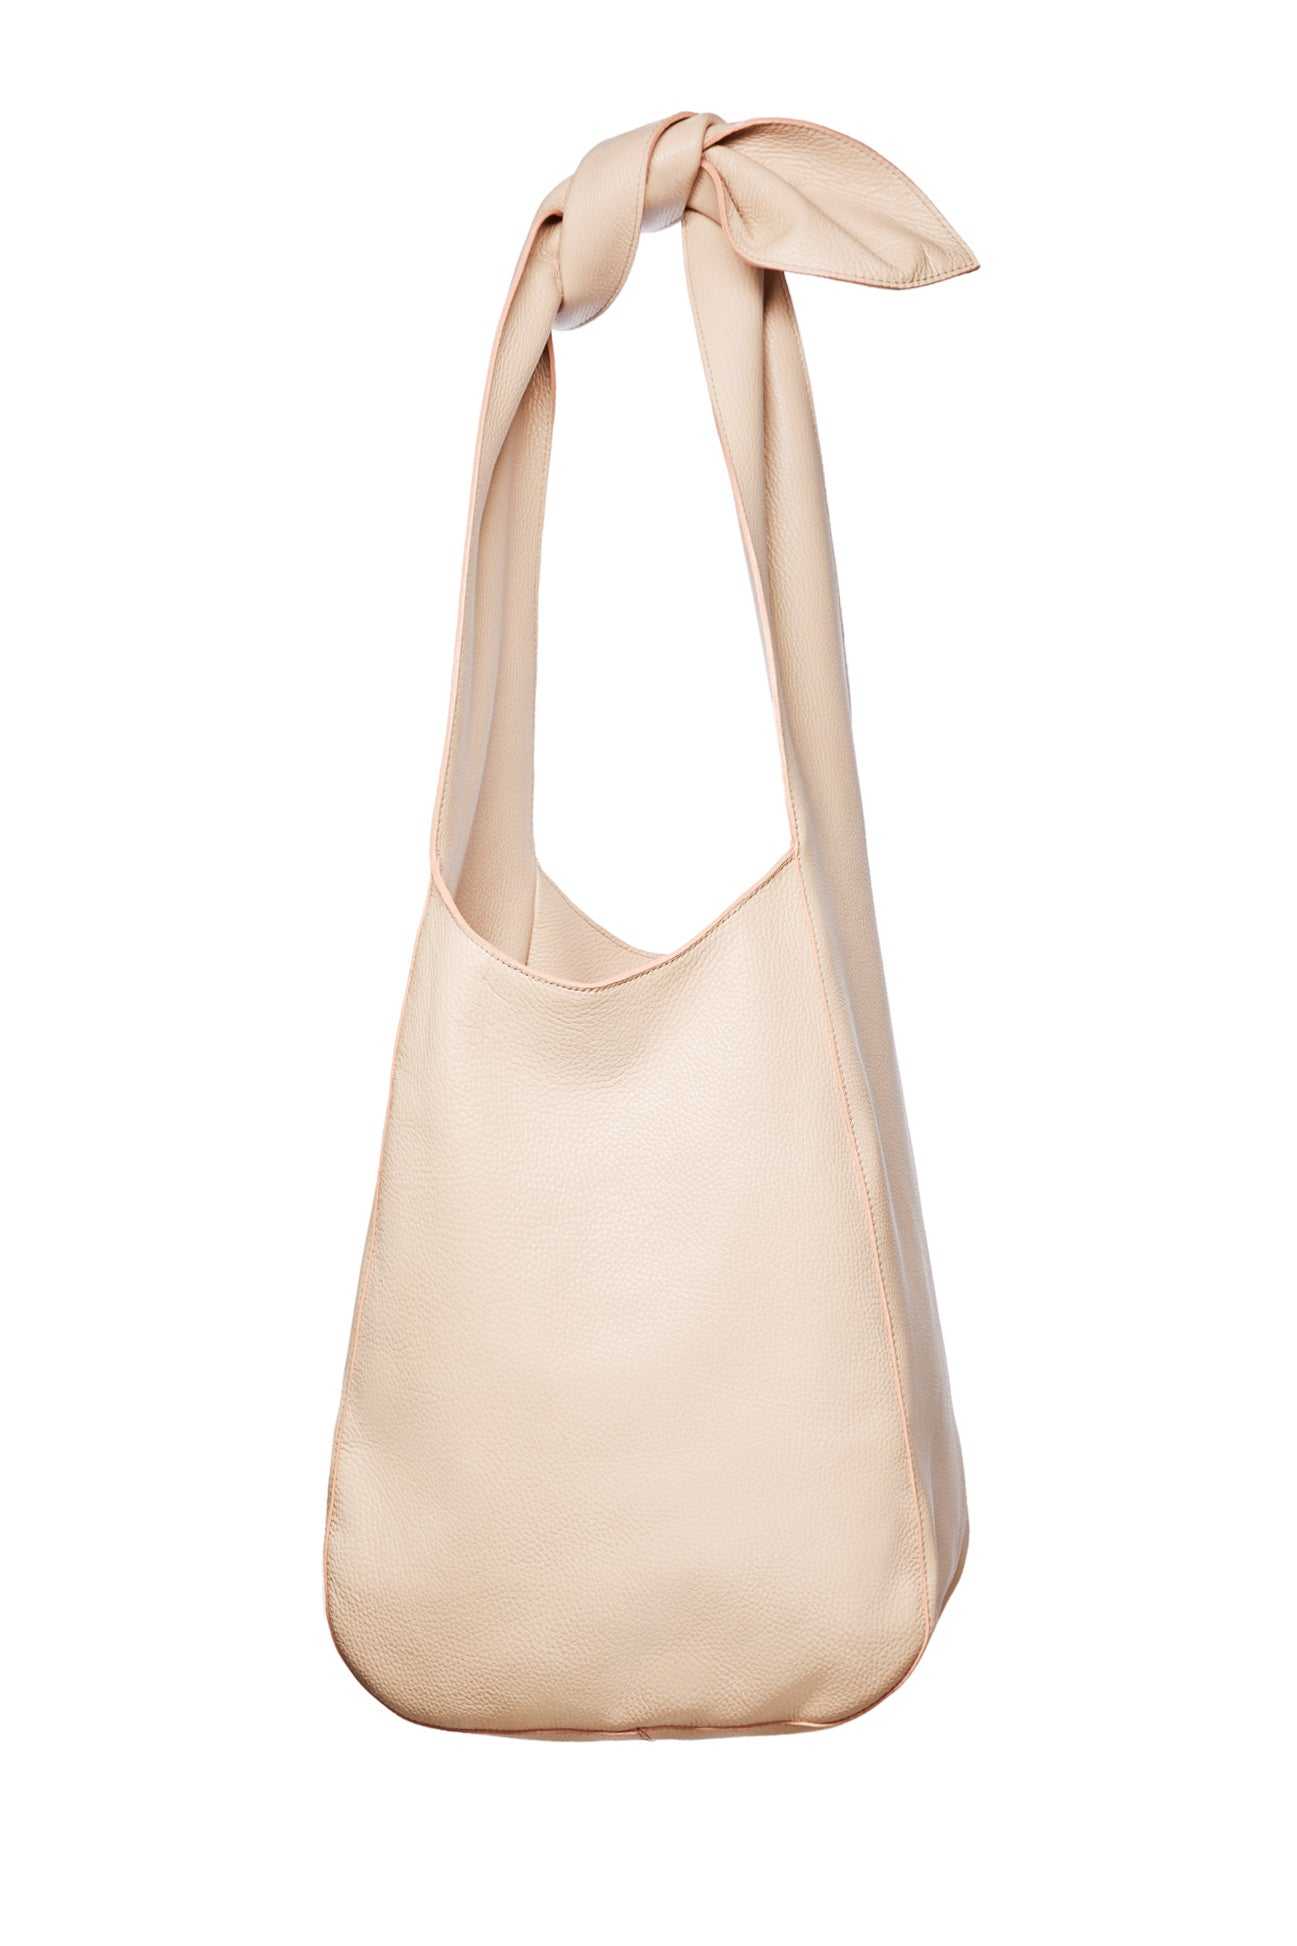 The Donna Hobo Bag in Nude